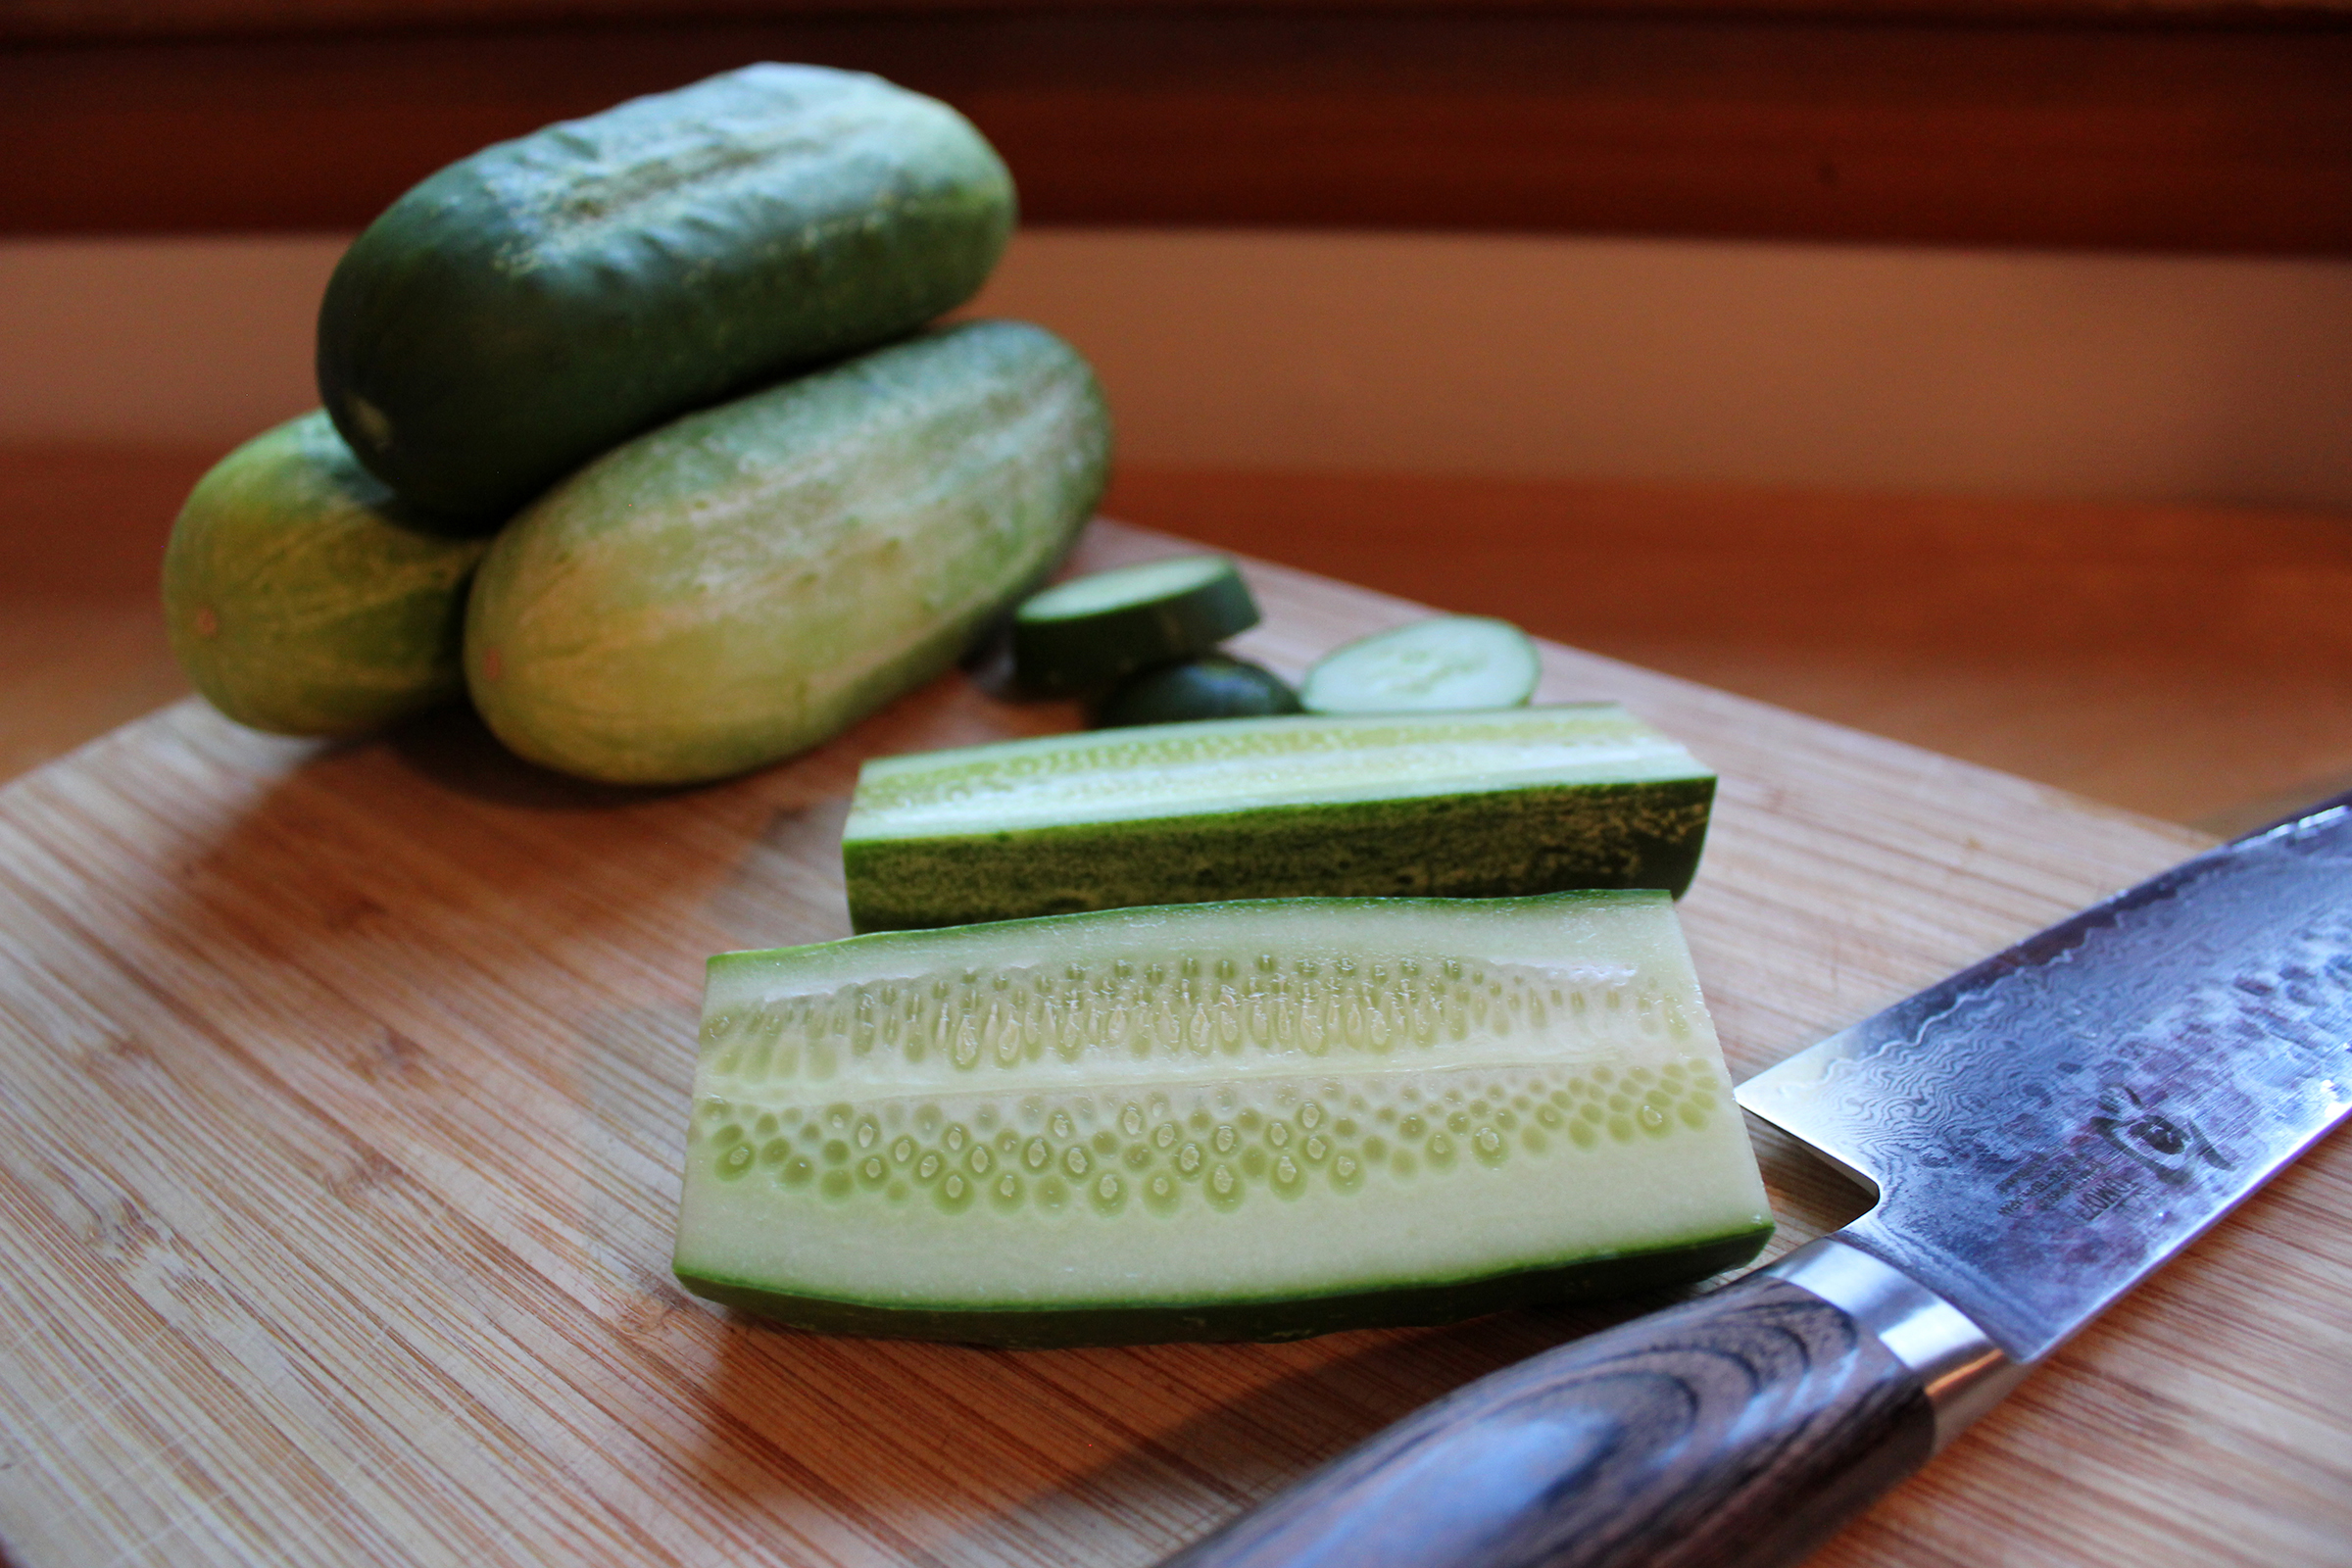 Slicking Fresh Pickling Cucumber Spears